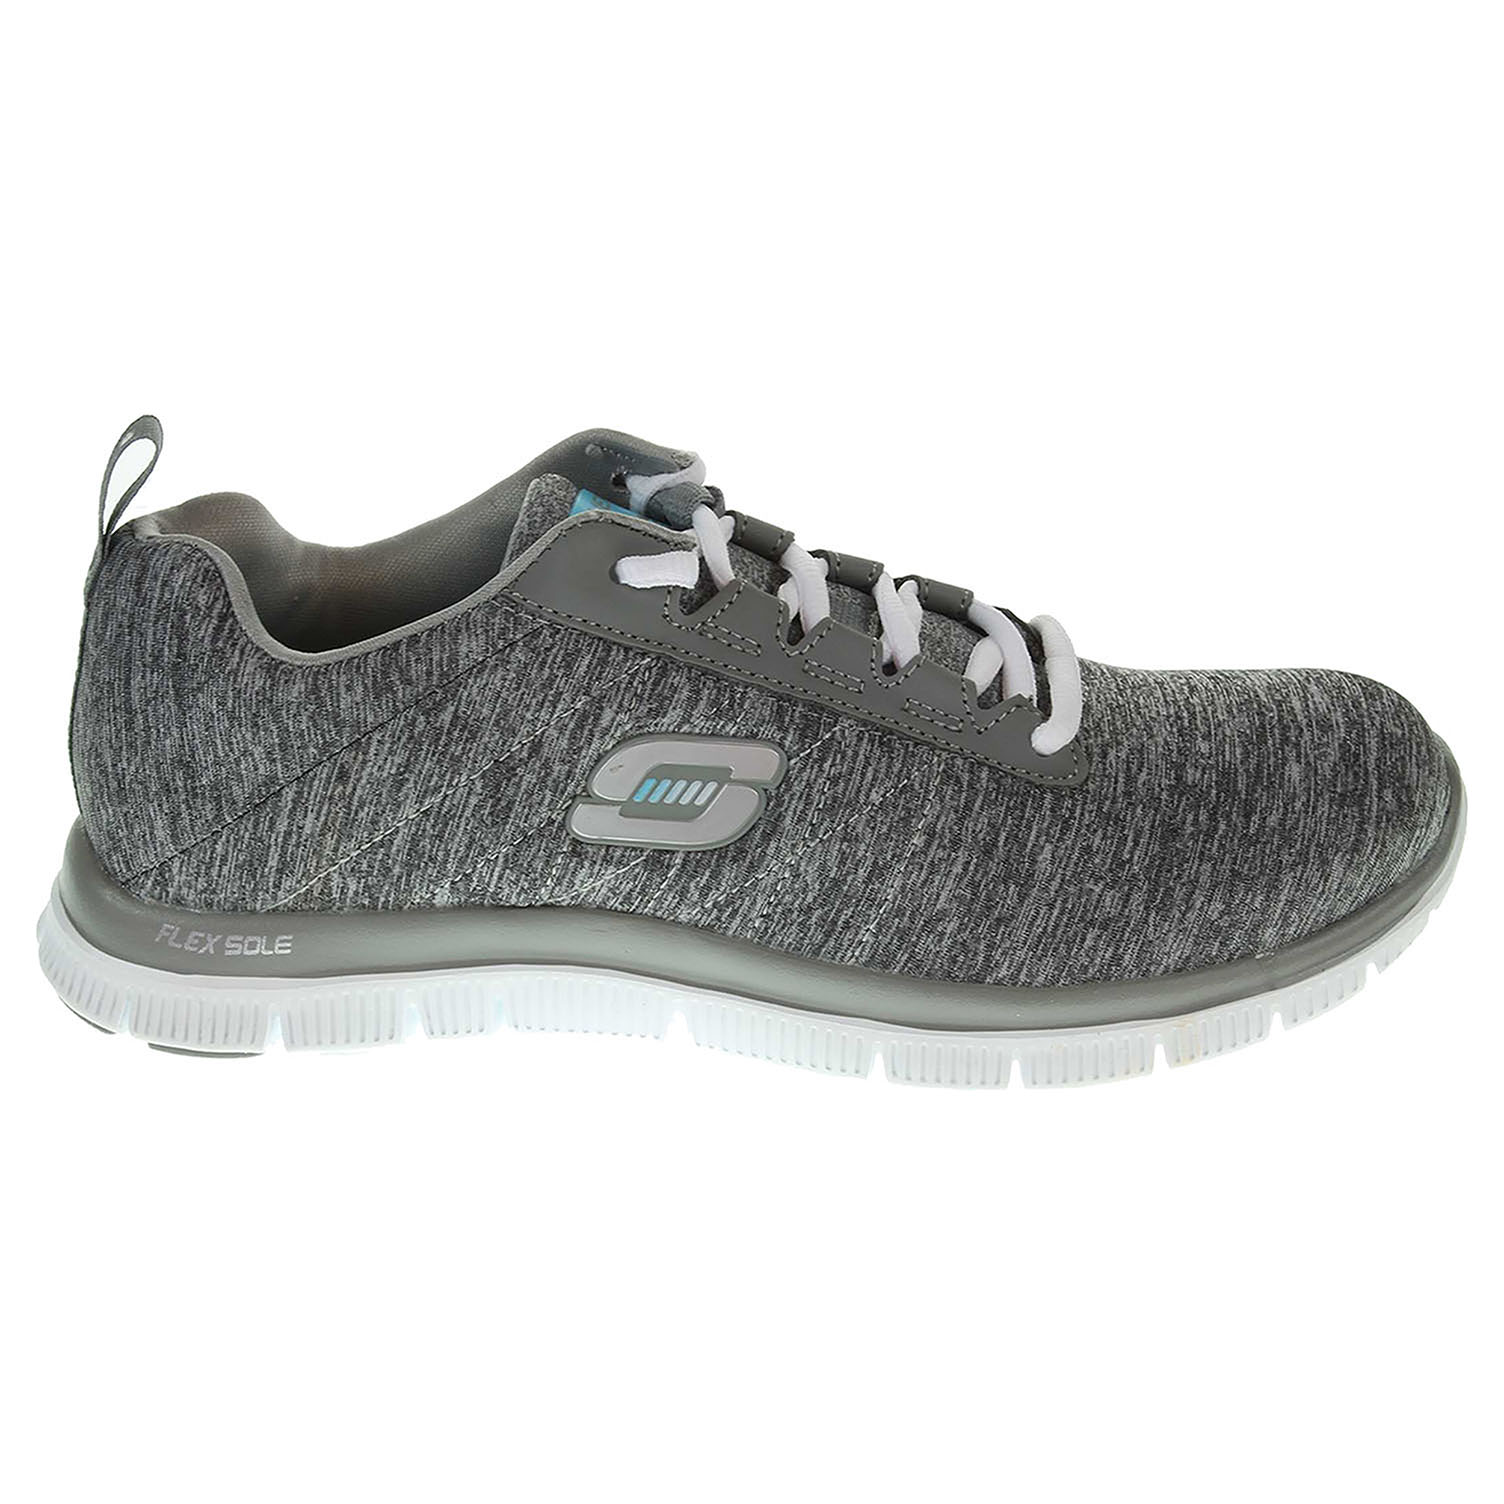 Skechers Next Generation gray 38